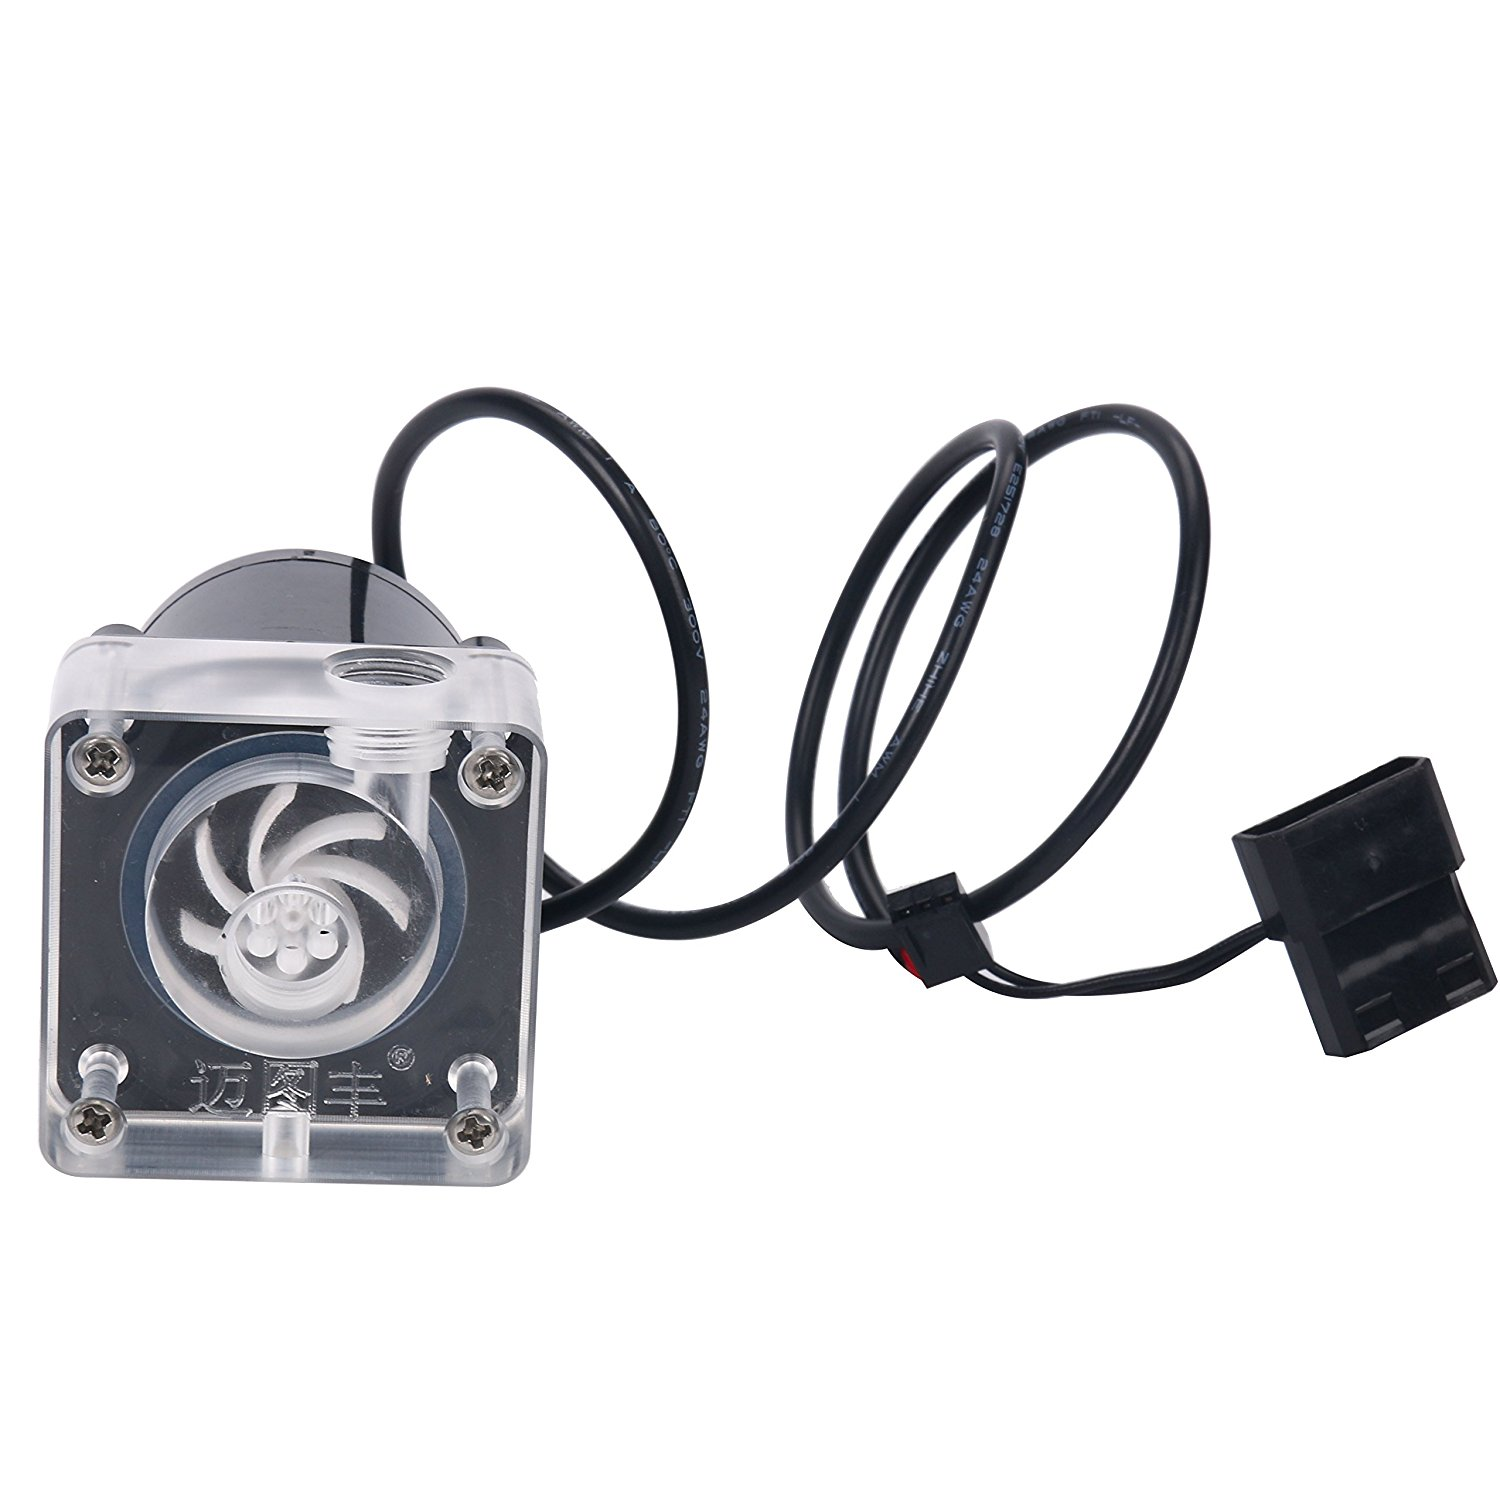 DC 12V 10W CPU Cooling Water Pump for Desktop Computer Cool System US Free Ship